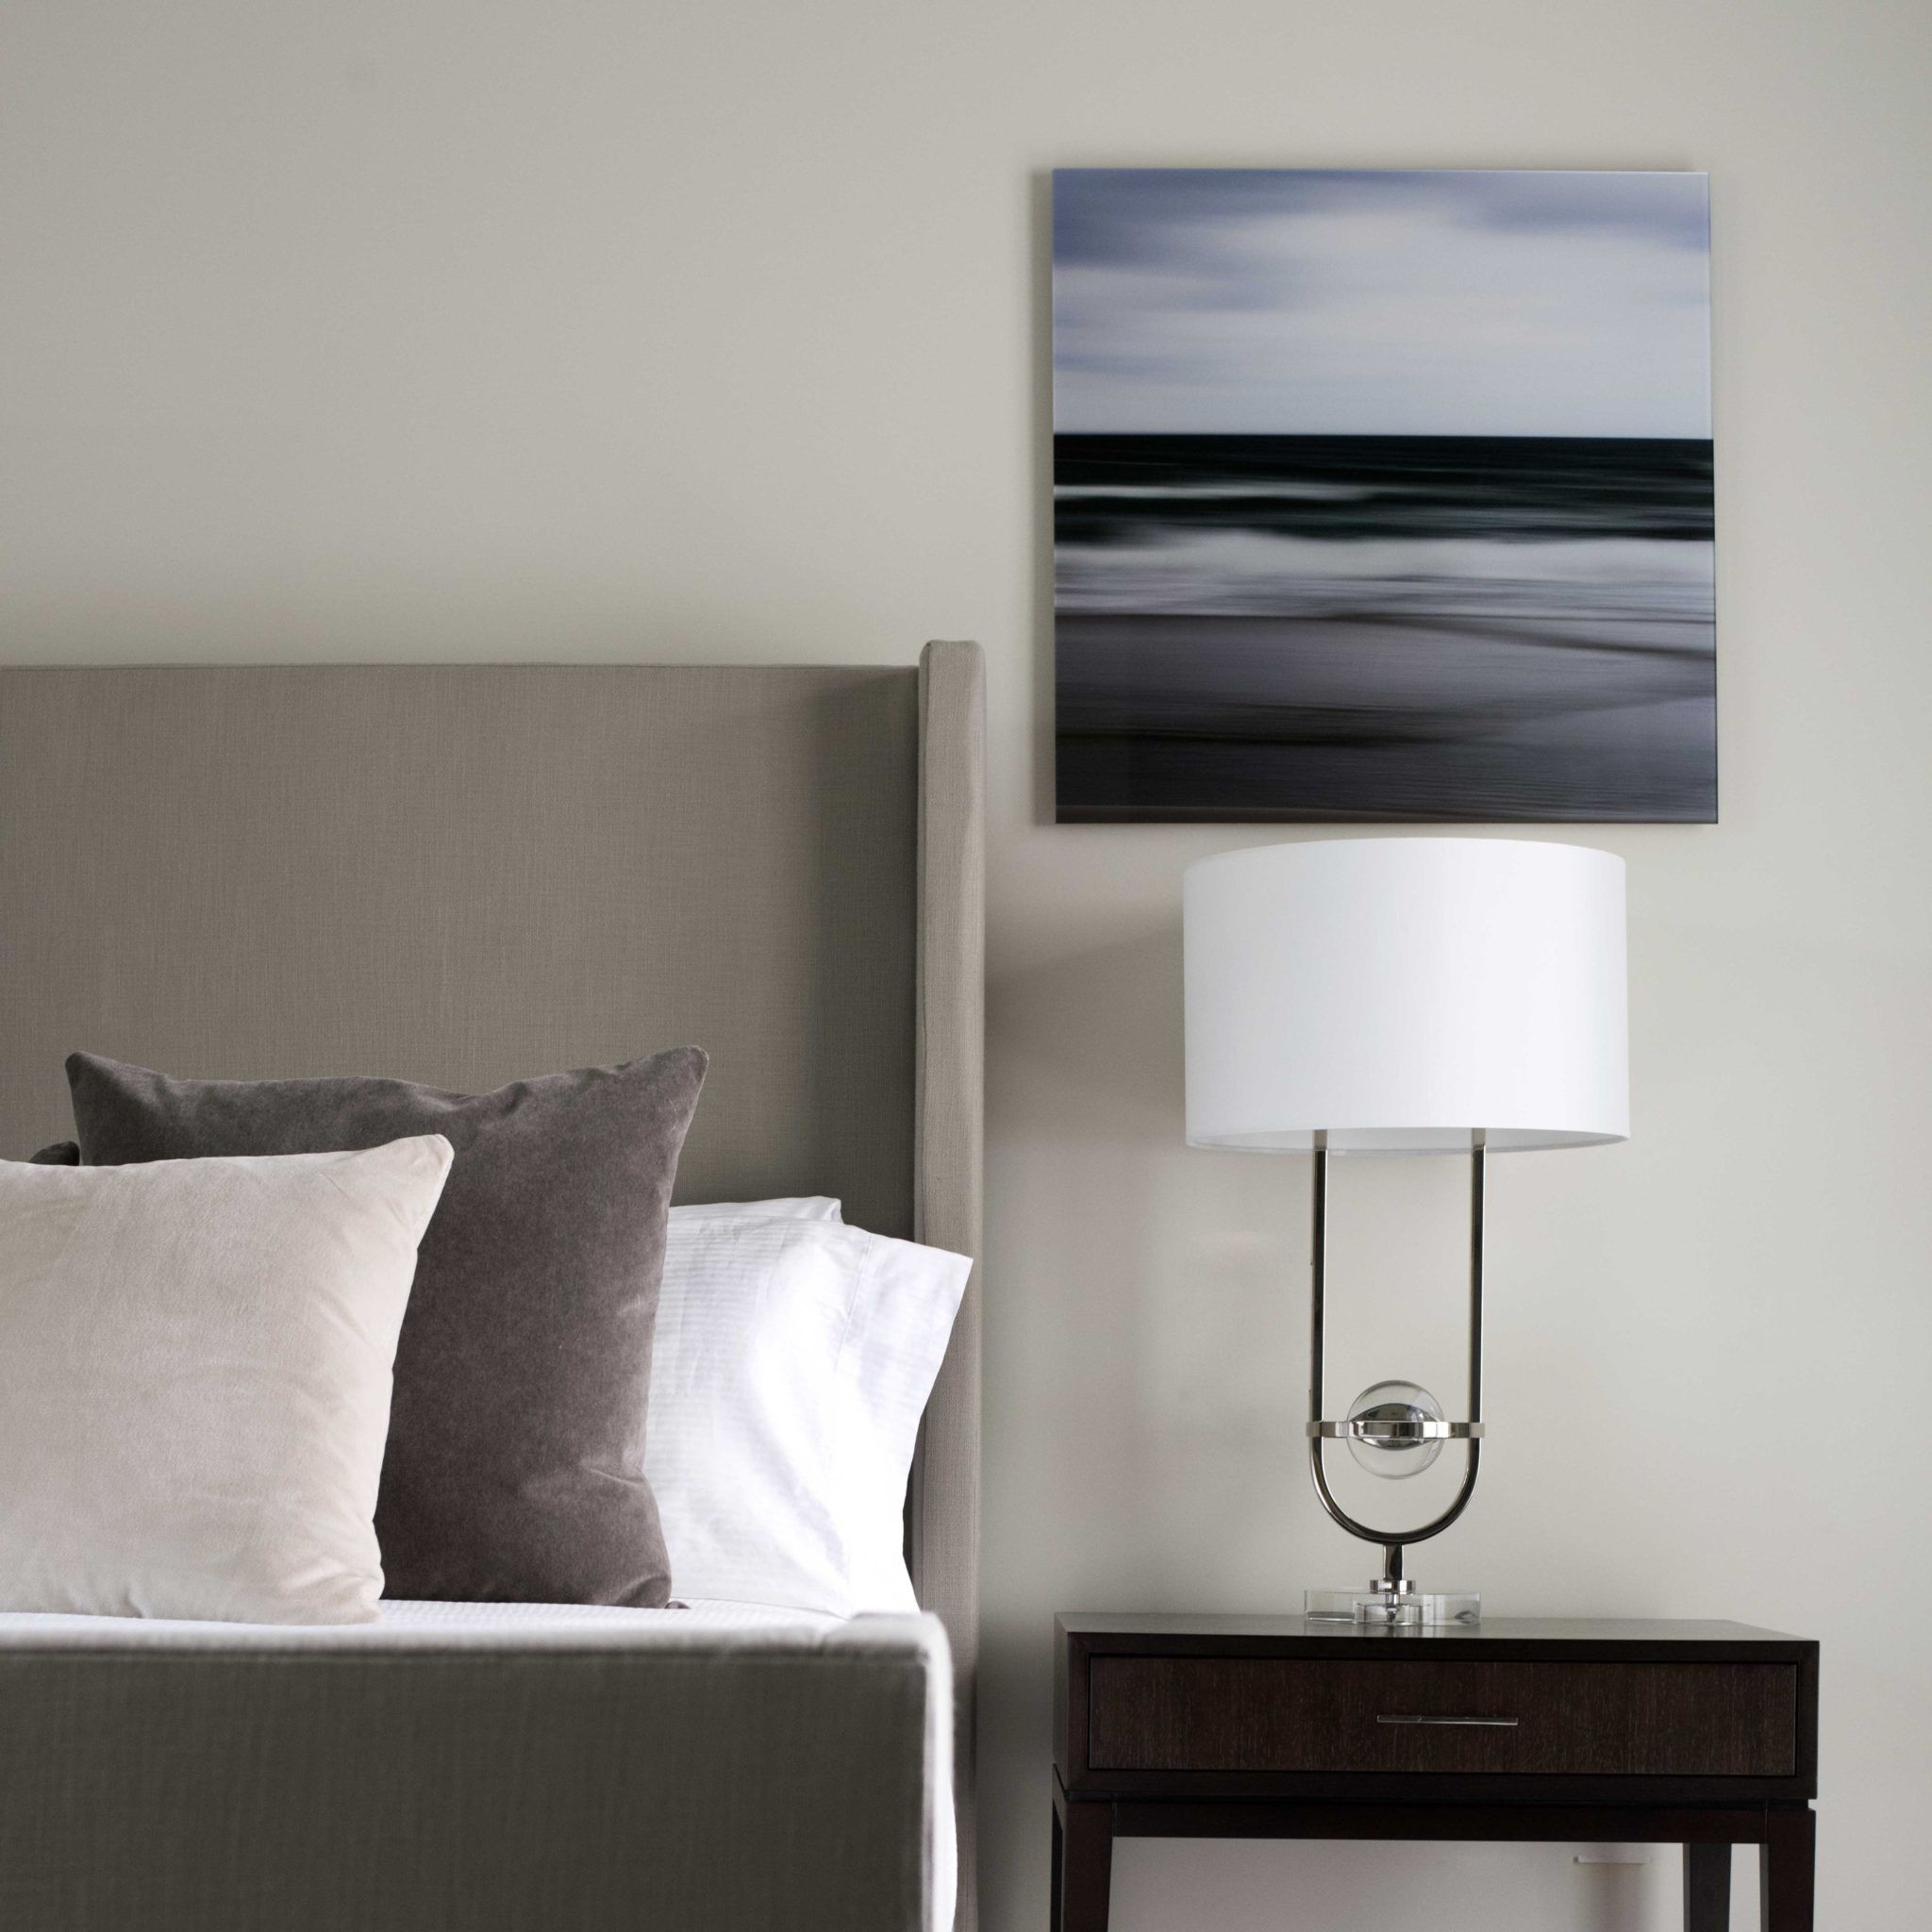 Bedroom Detail - Seagate Interior Design